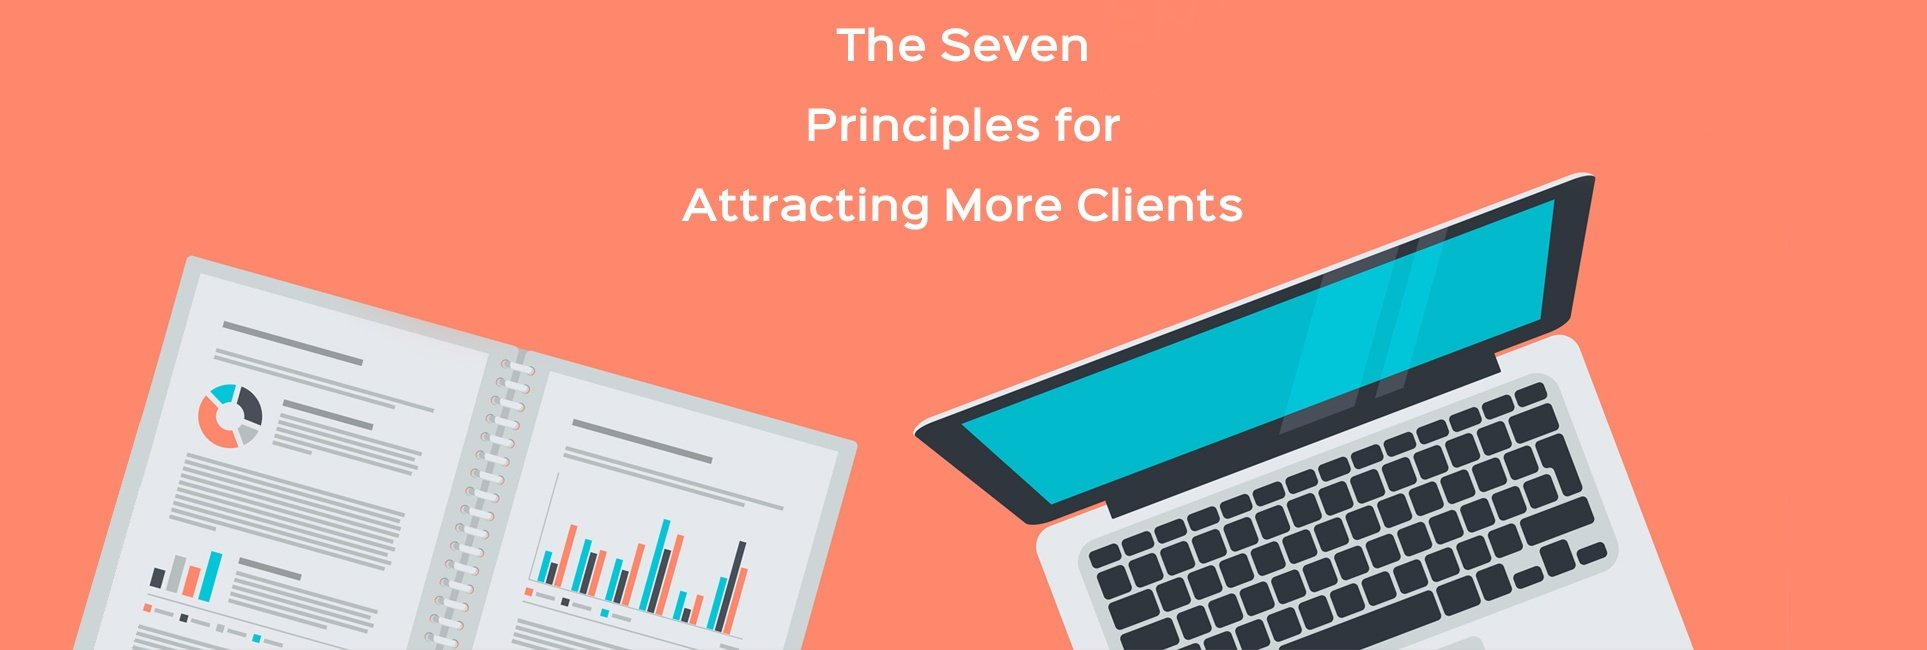 seven principles for attracting more clients